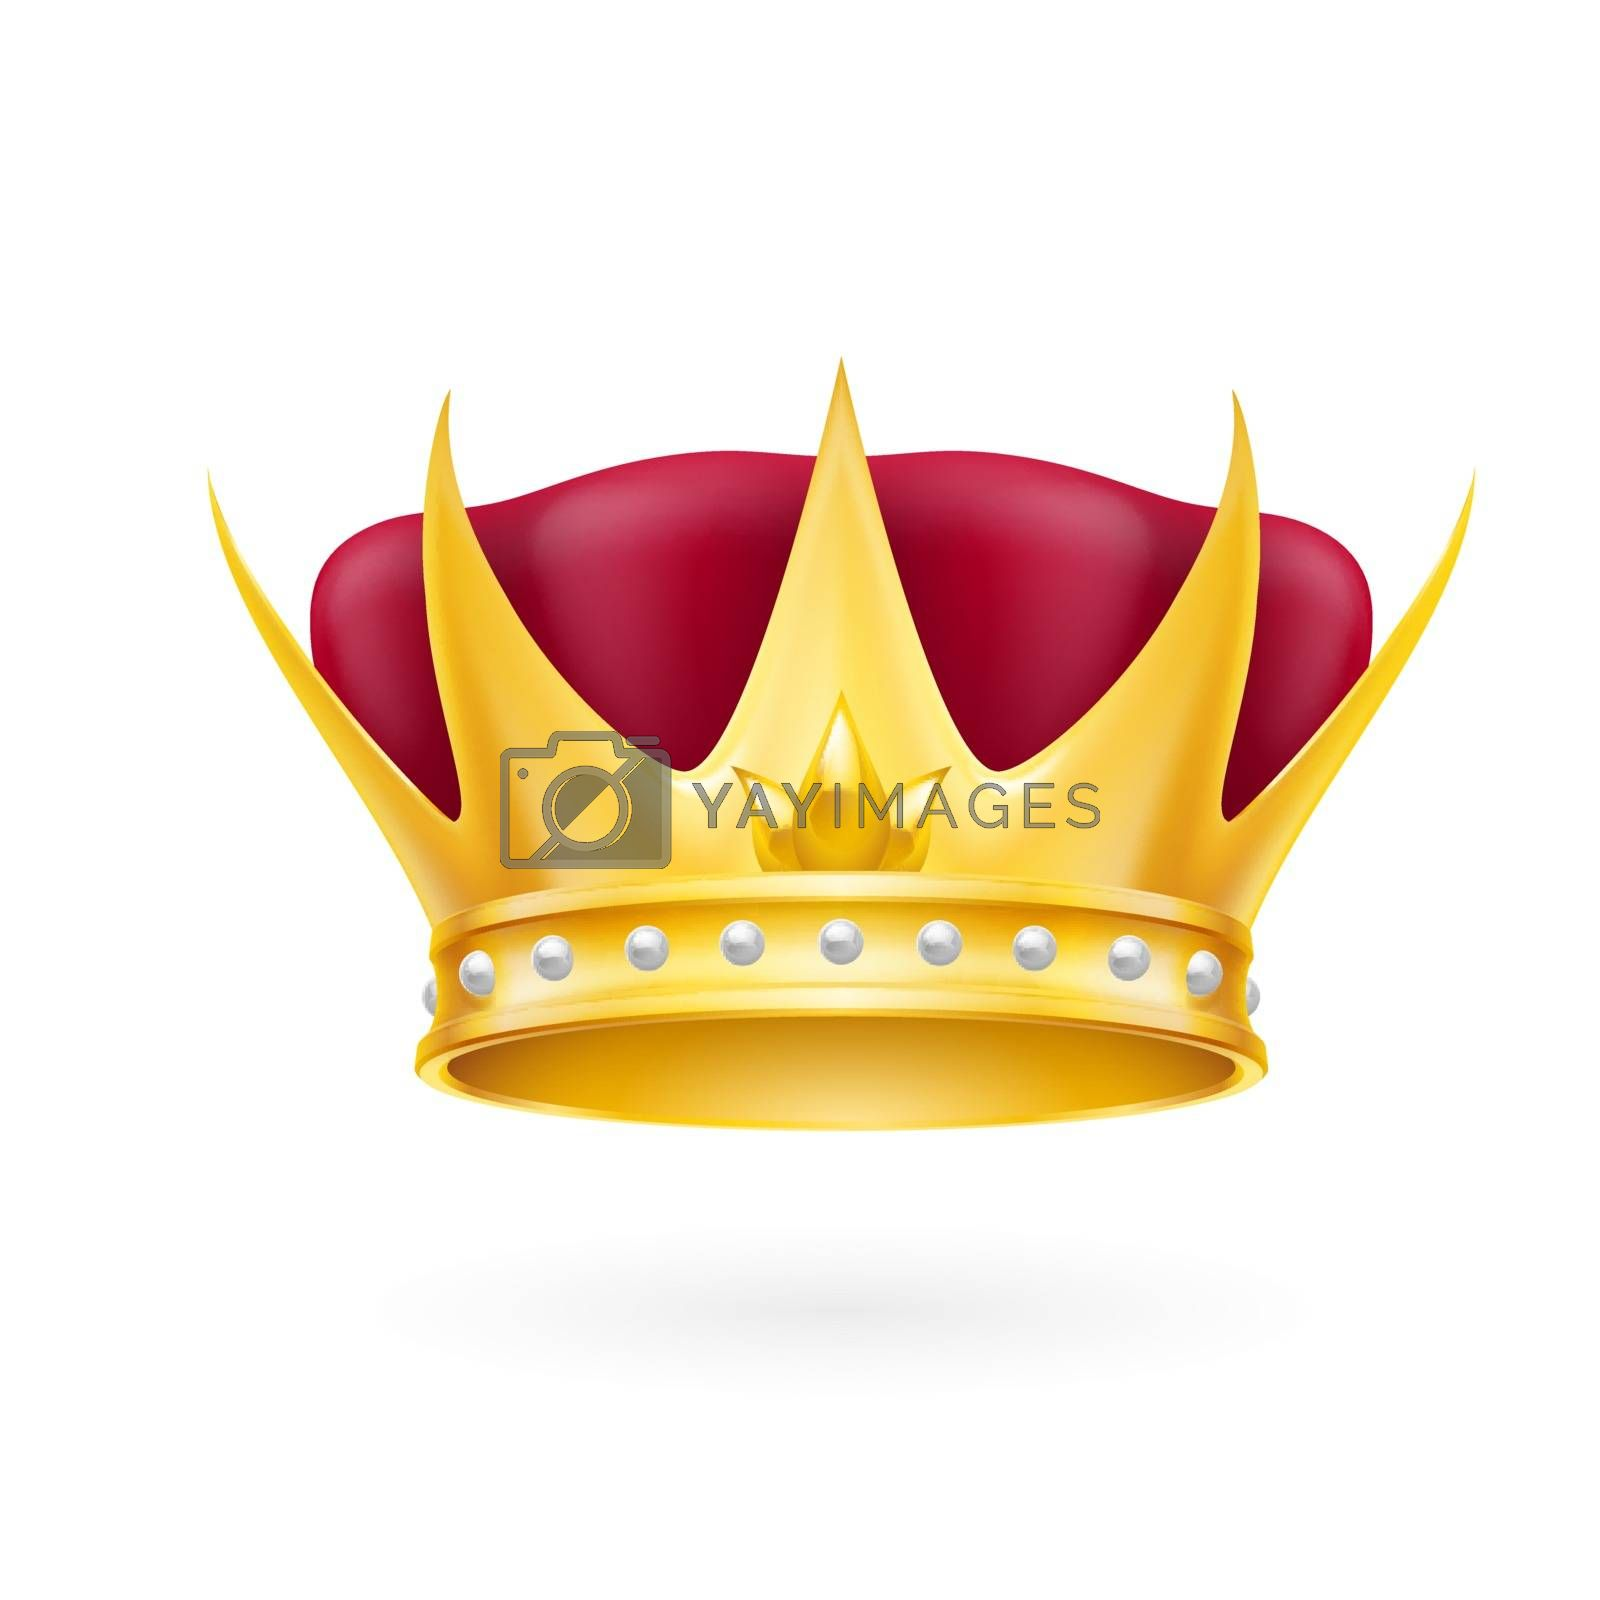 Golden crown royal attribute isolated on a white